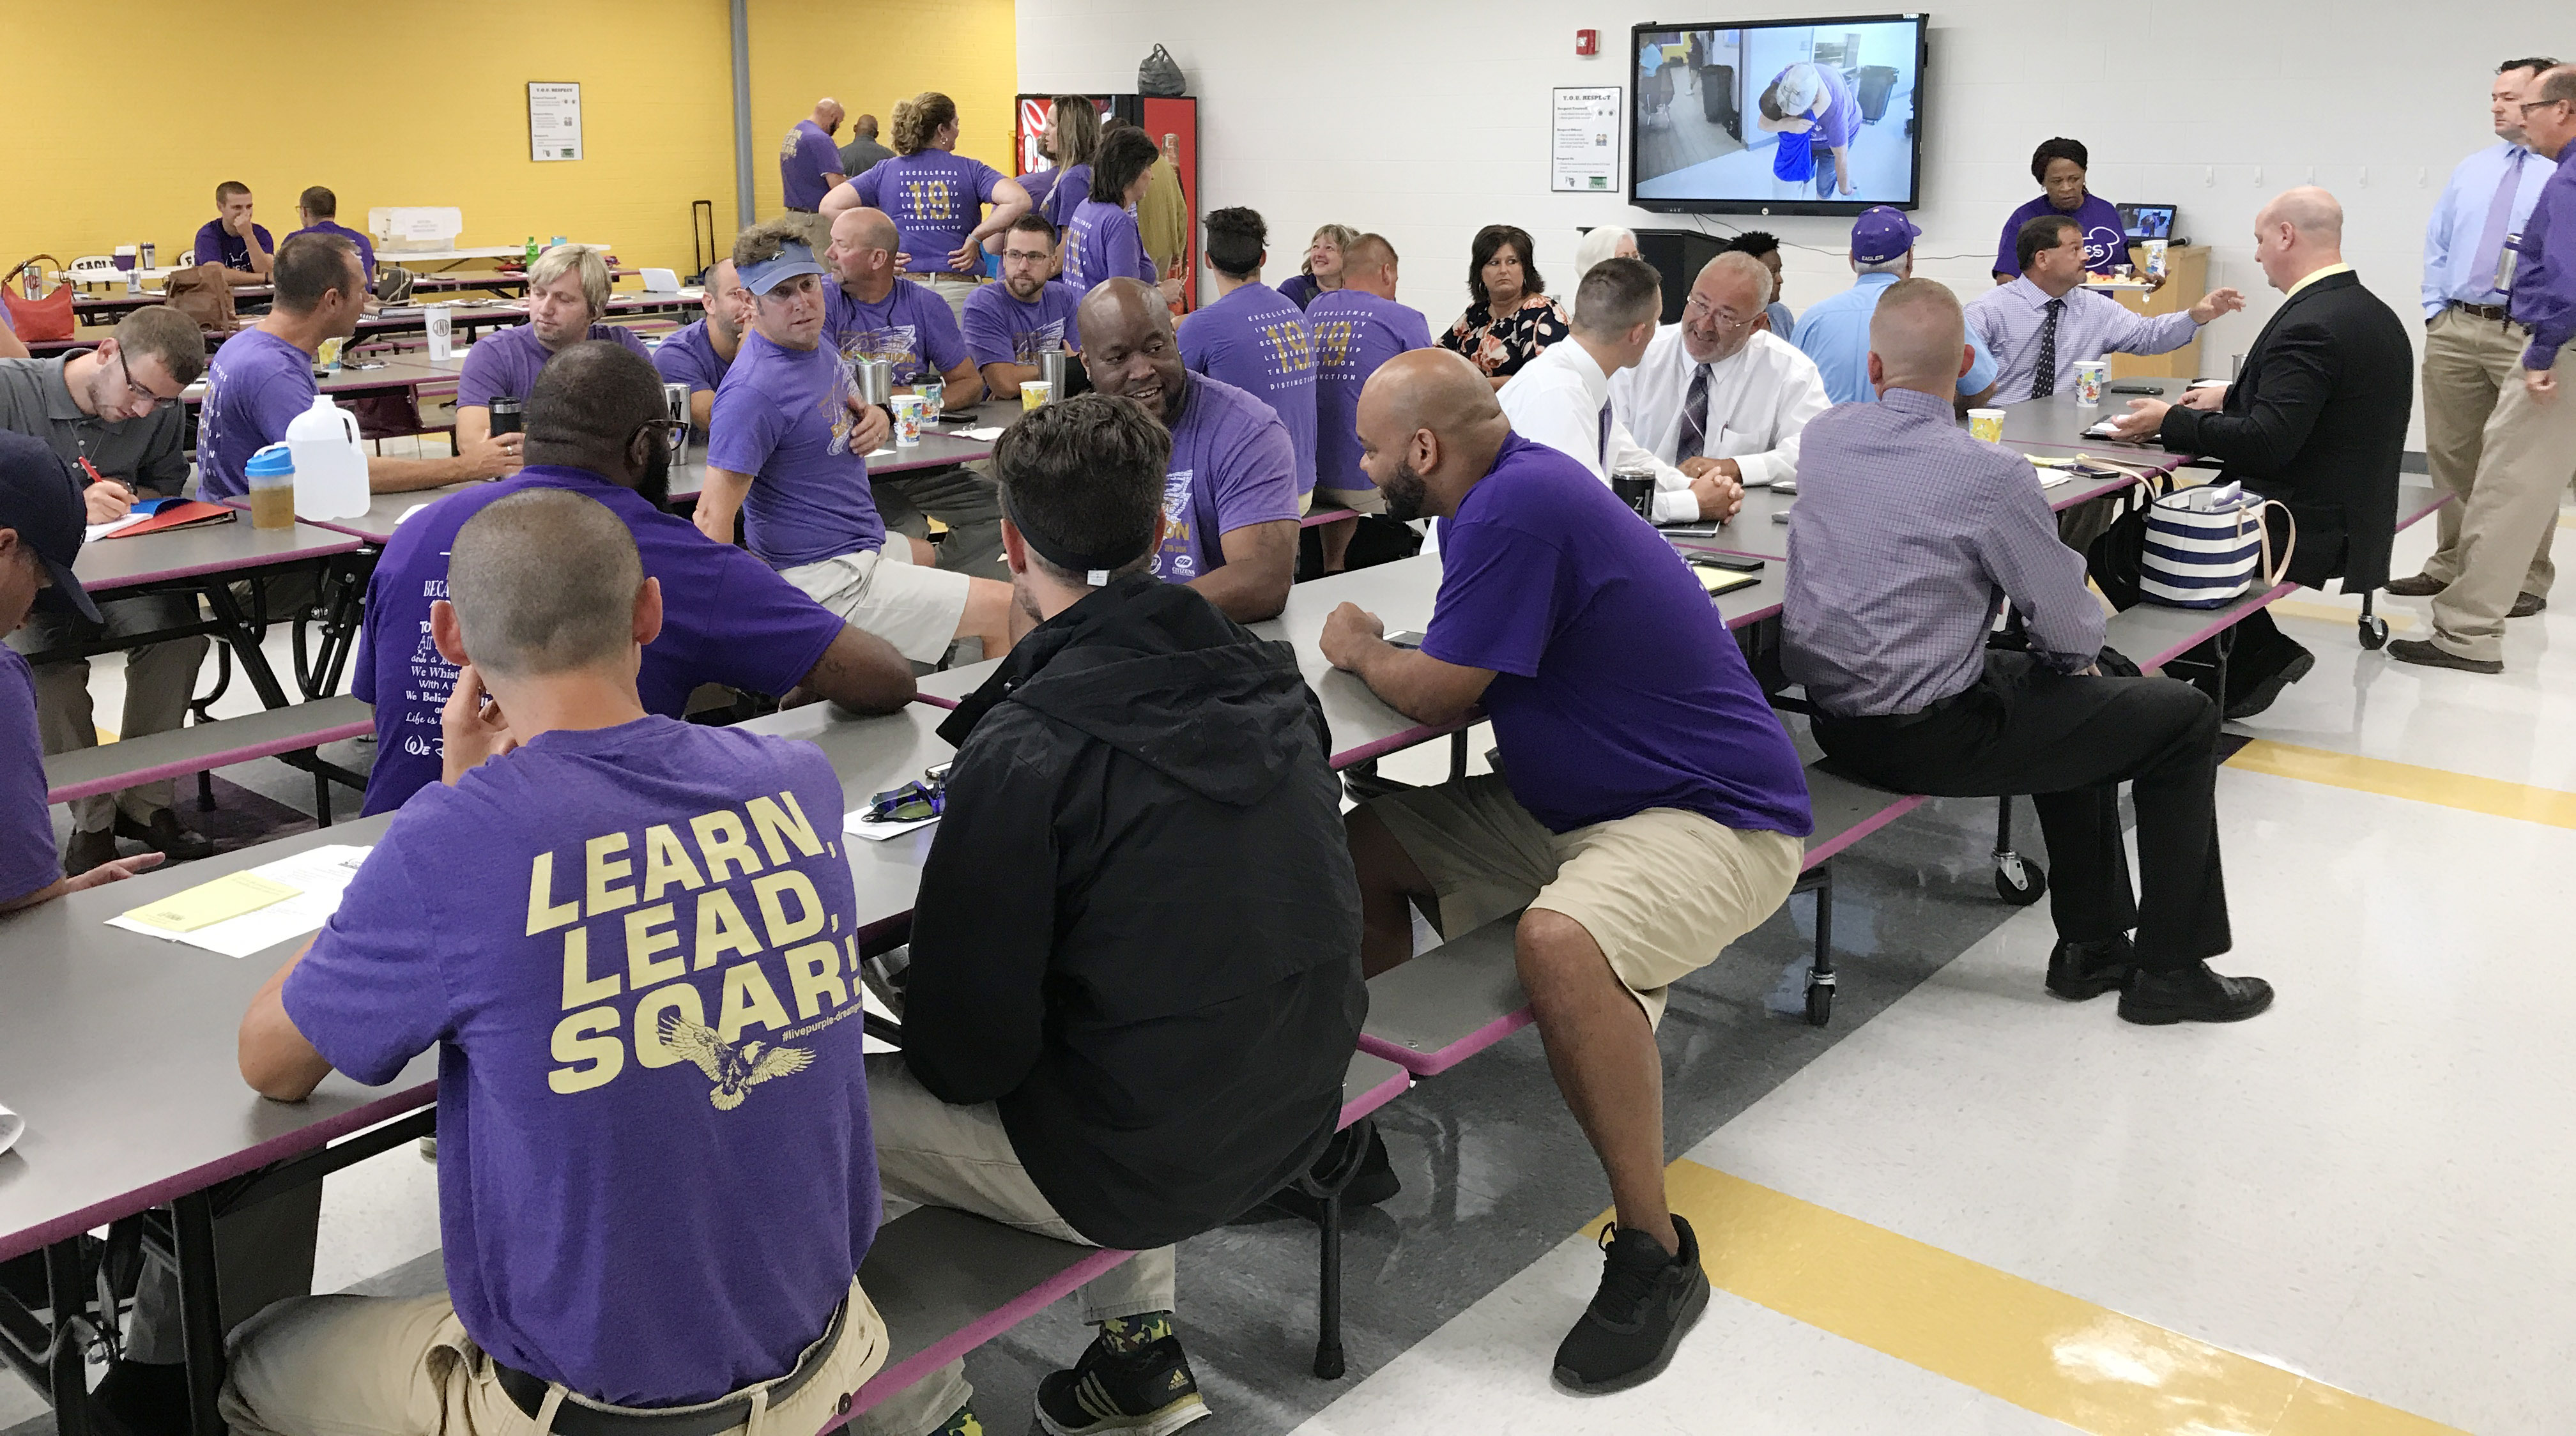 CIS employees join together for breakfast and fellowship during an opening day workshop for the 2017-2018 school year.